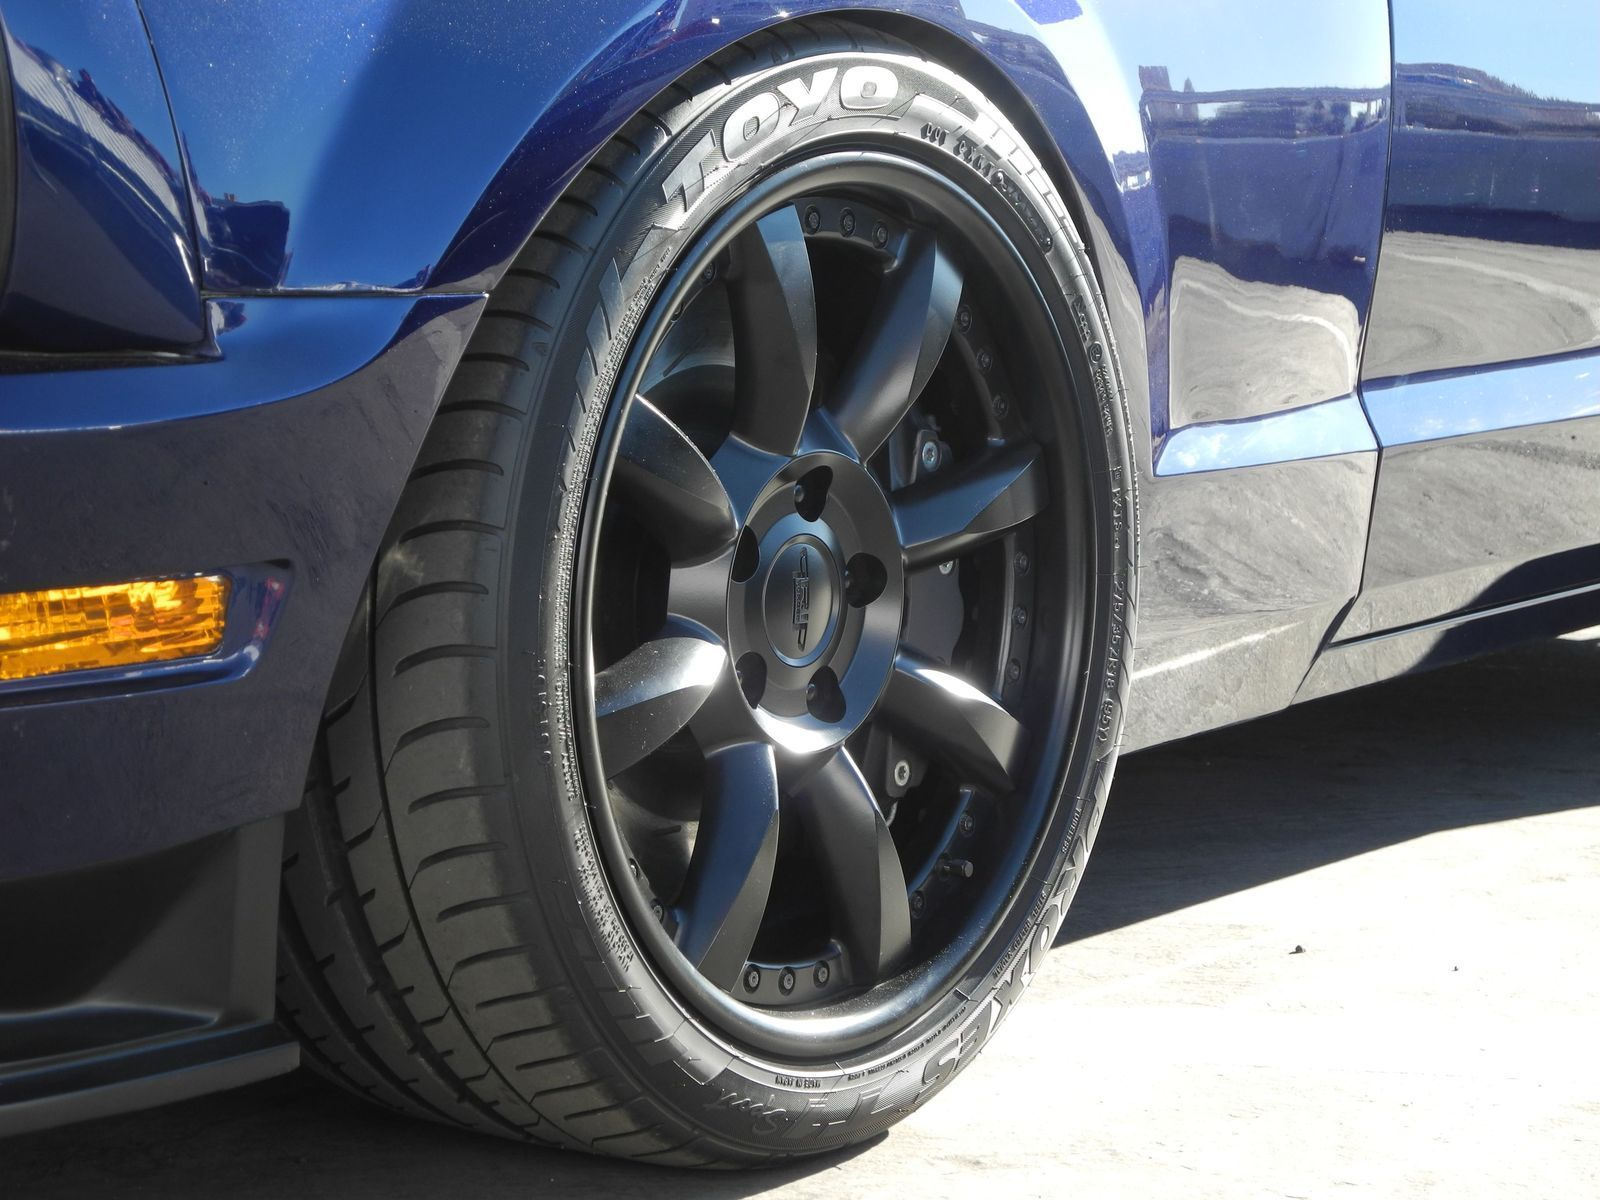 1978 Ford Mustang | Mustang Evolution on Grip Equipped Laguna Wheels